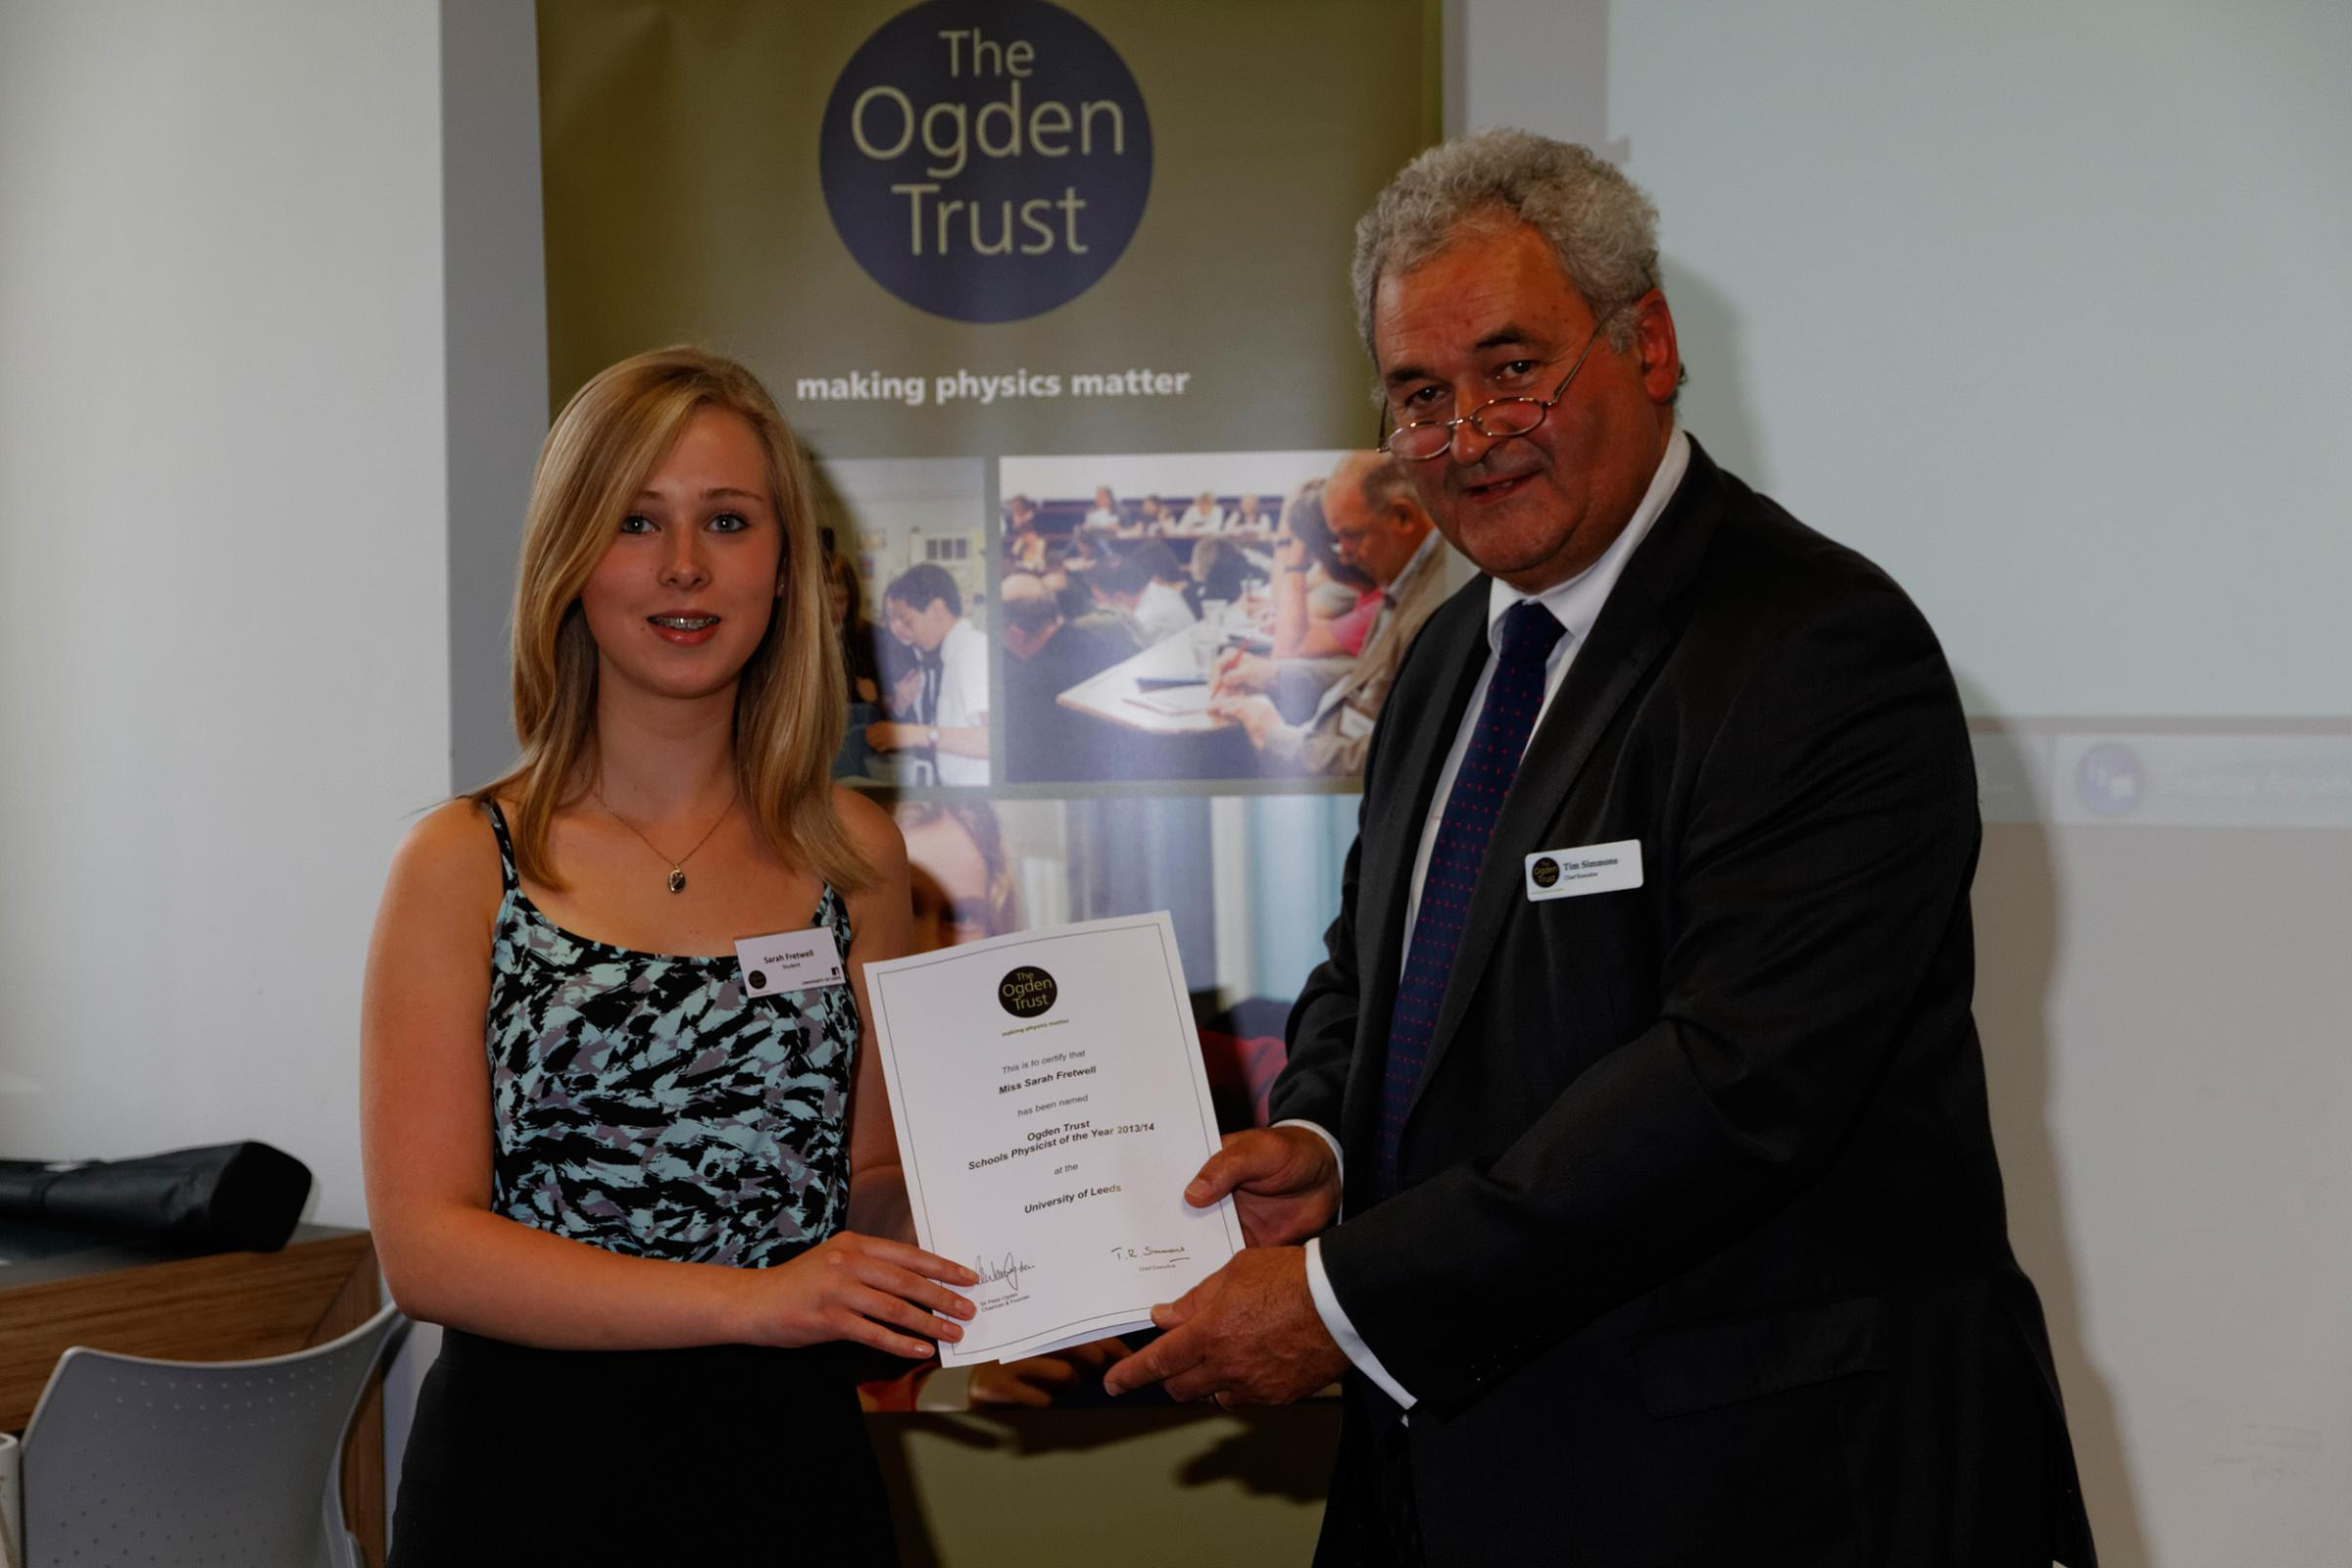 South Craven School pupil Sarah Fretwell being presented with her award by Tim Simmonds, chief executive officer of the Ogden Trust